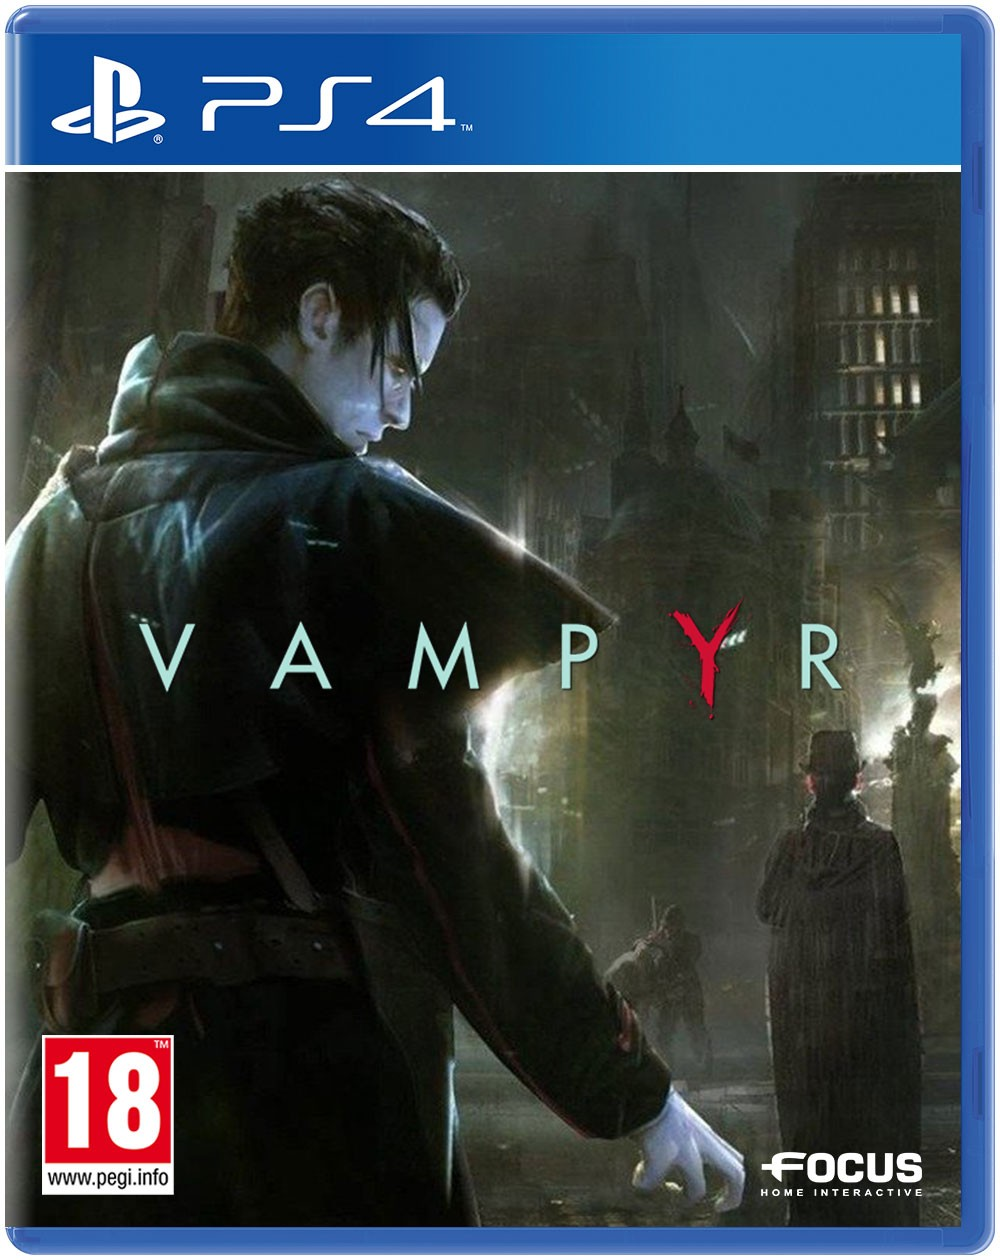 Test Vampyr ps4 Lageekroom Blog gaming